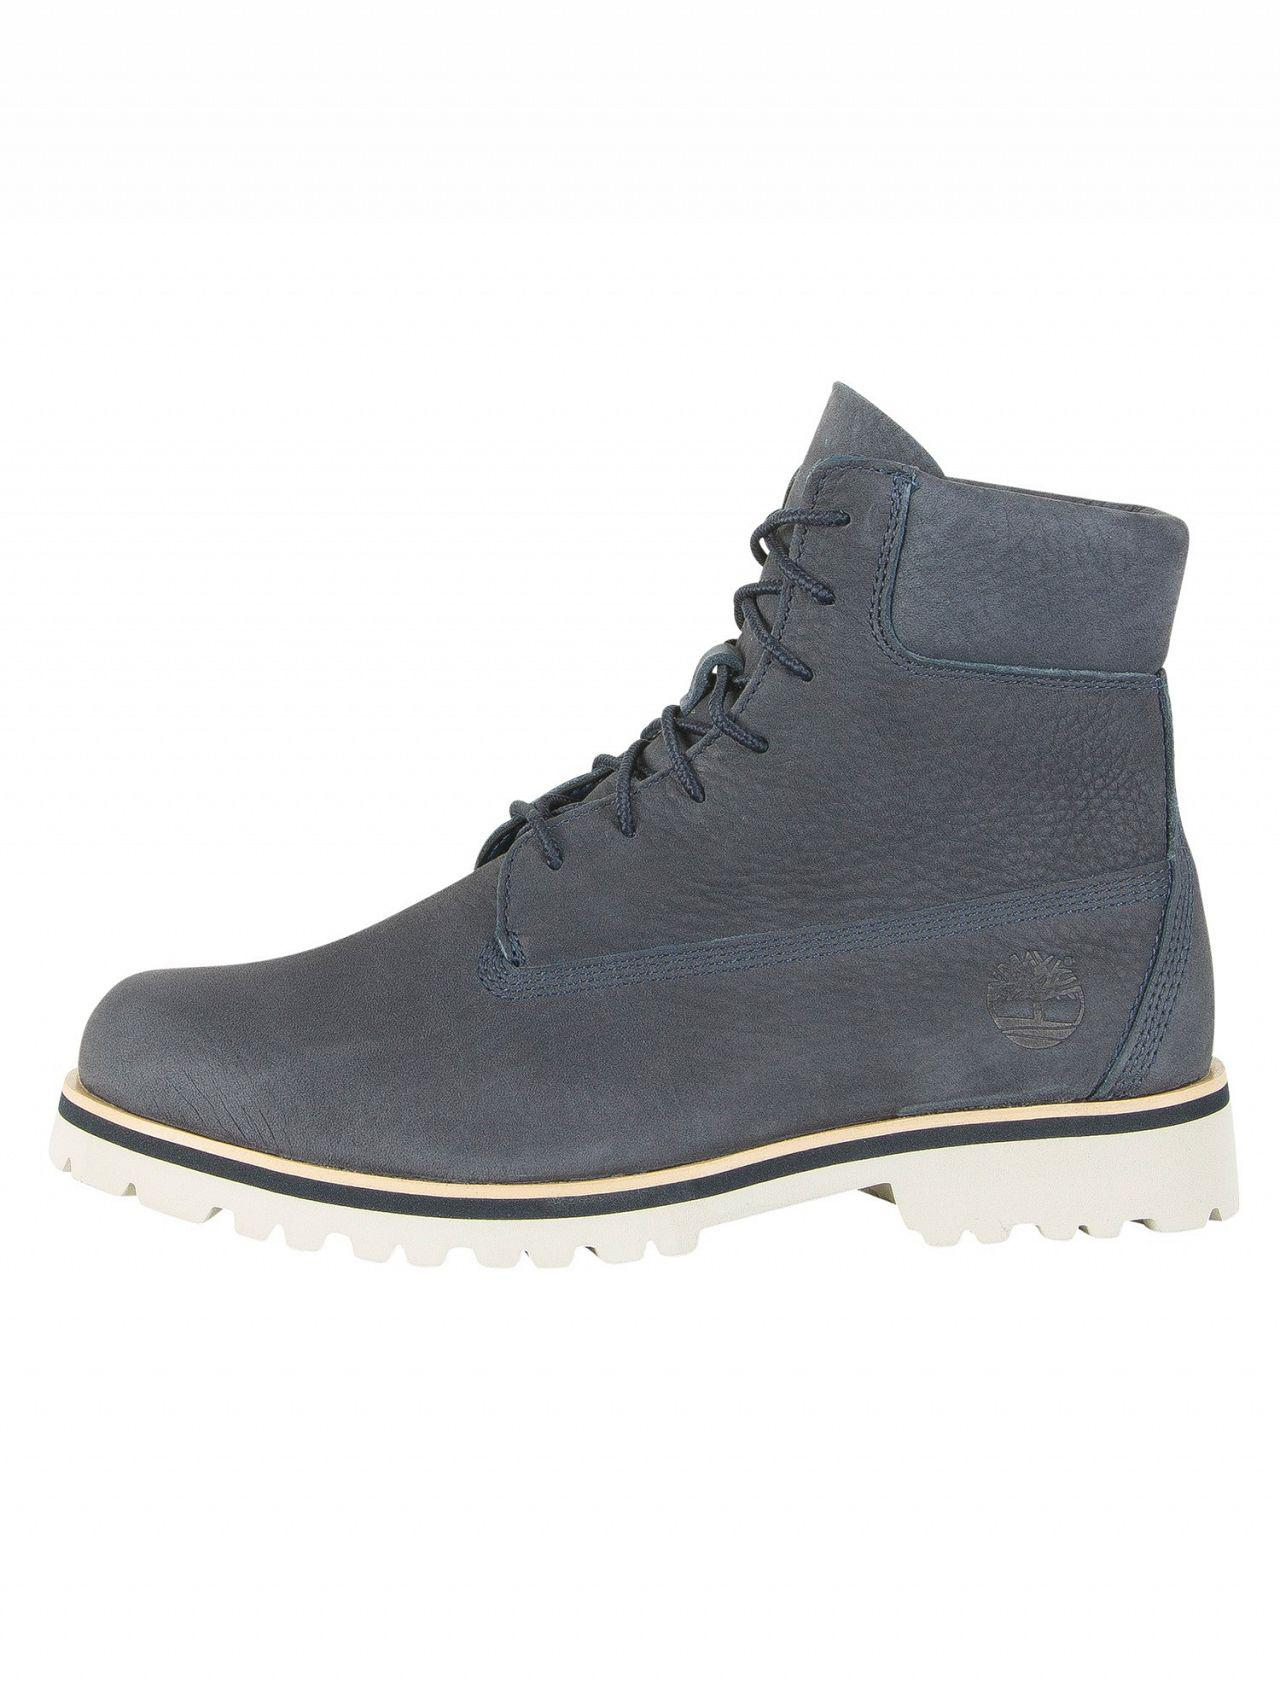 7ce353bd4e0 Lyst - Timberland Chilmark 6 Inch Classic Boots in Blue for Men